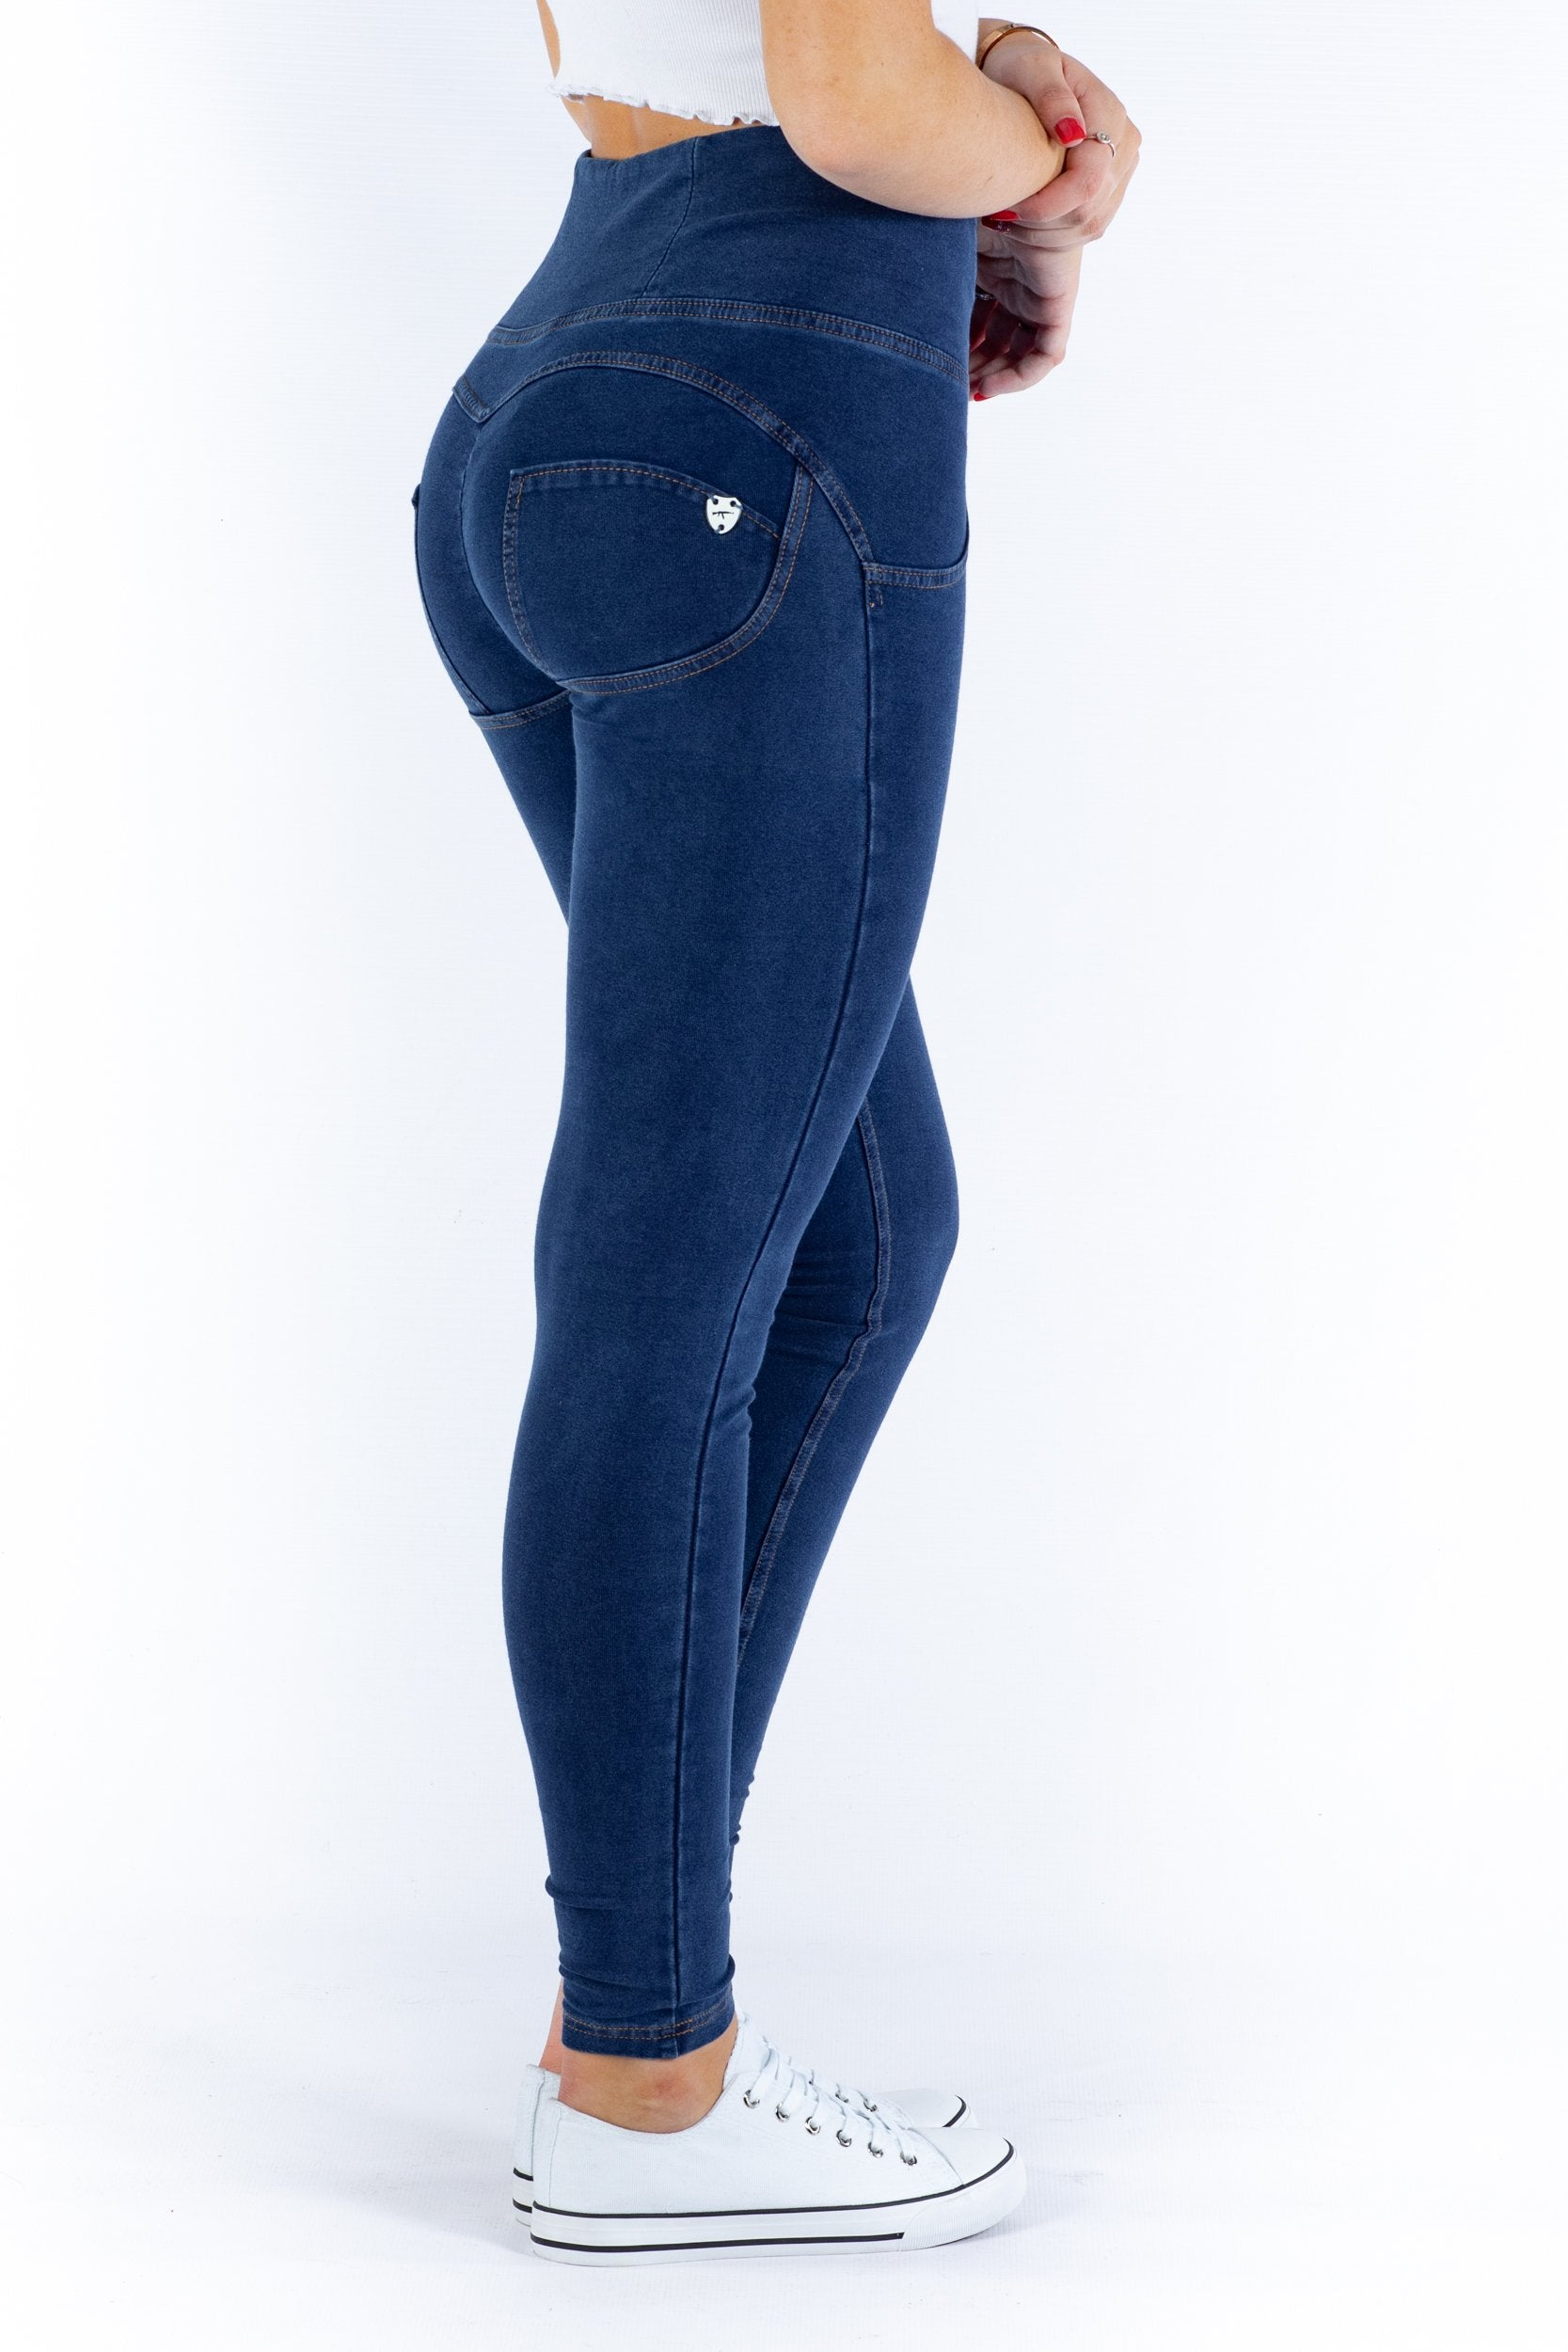 Image of High waist Butt lifting Jeggings - Dark Blue